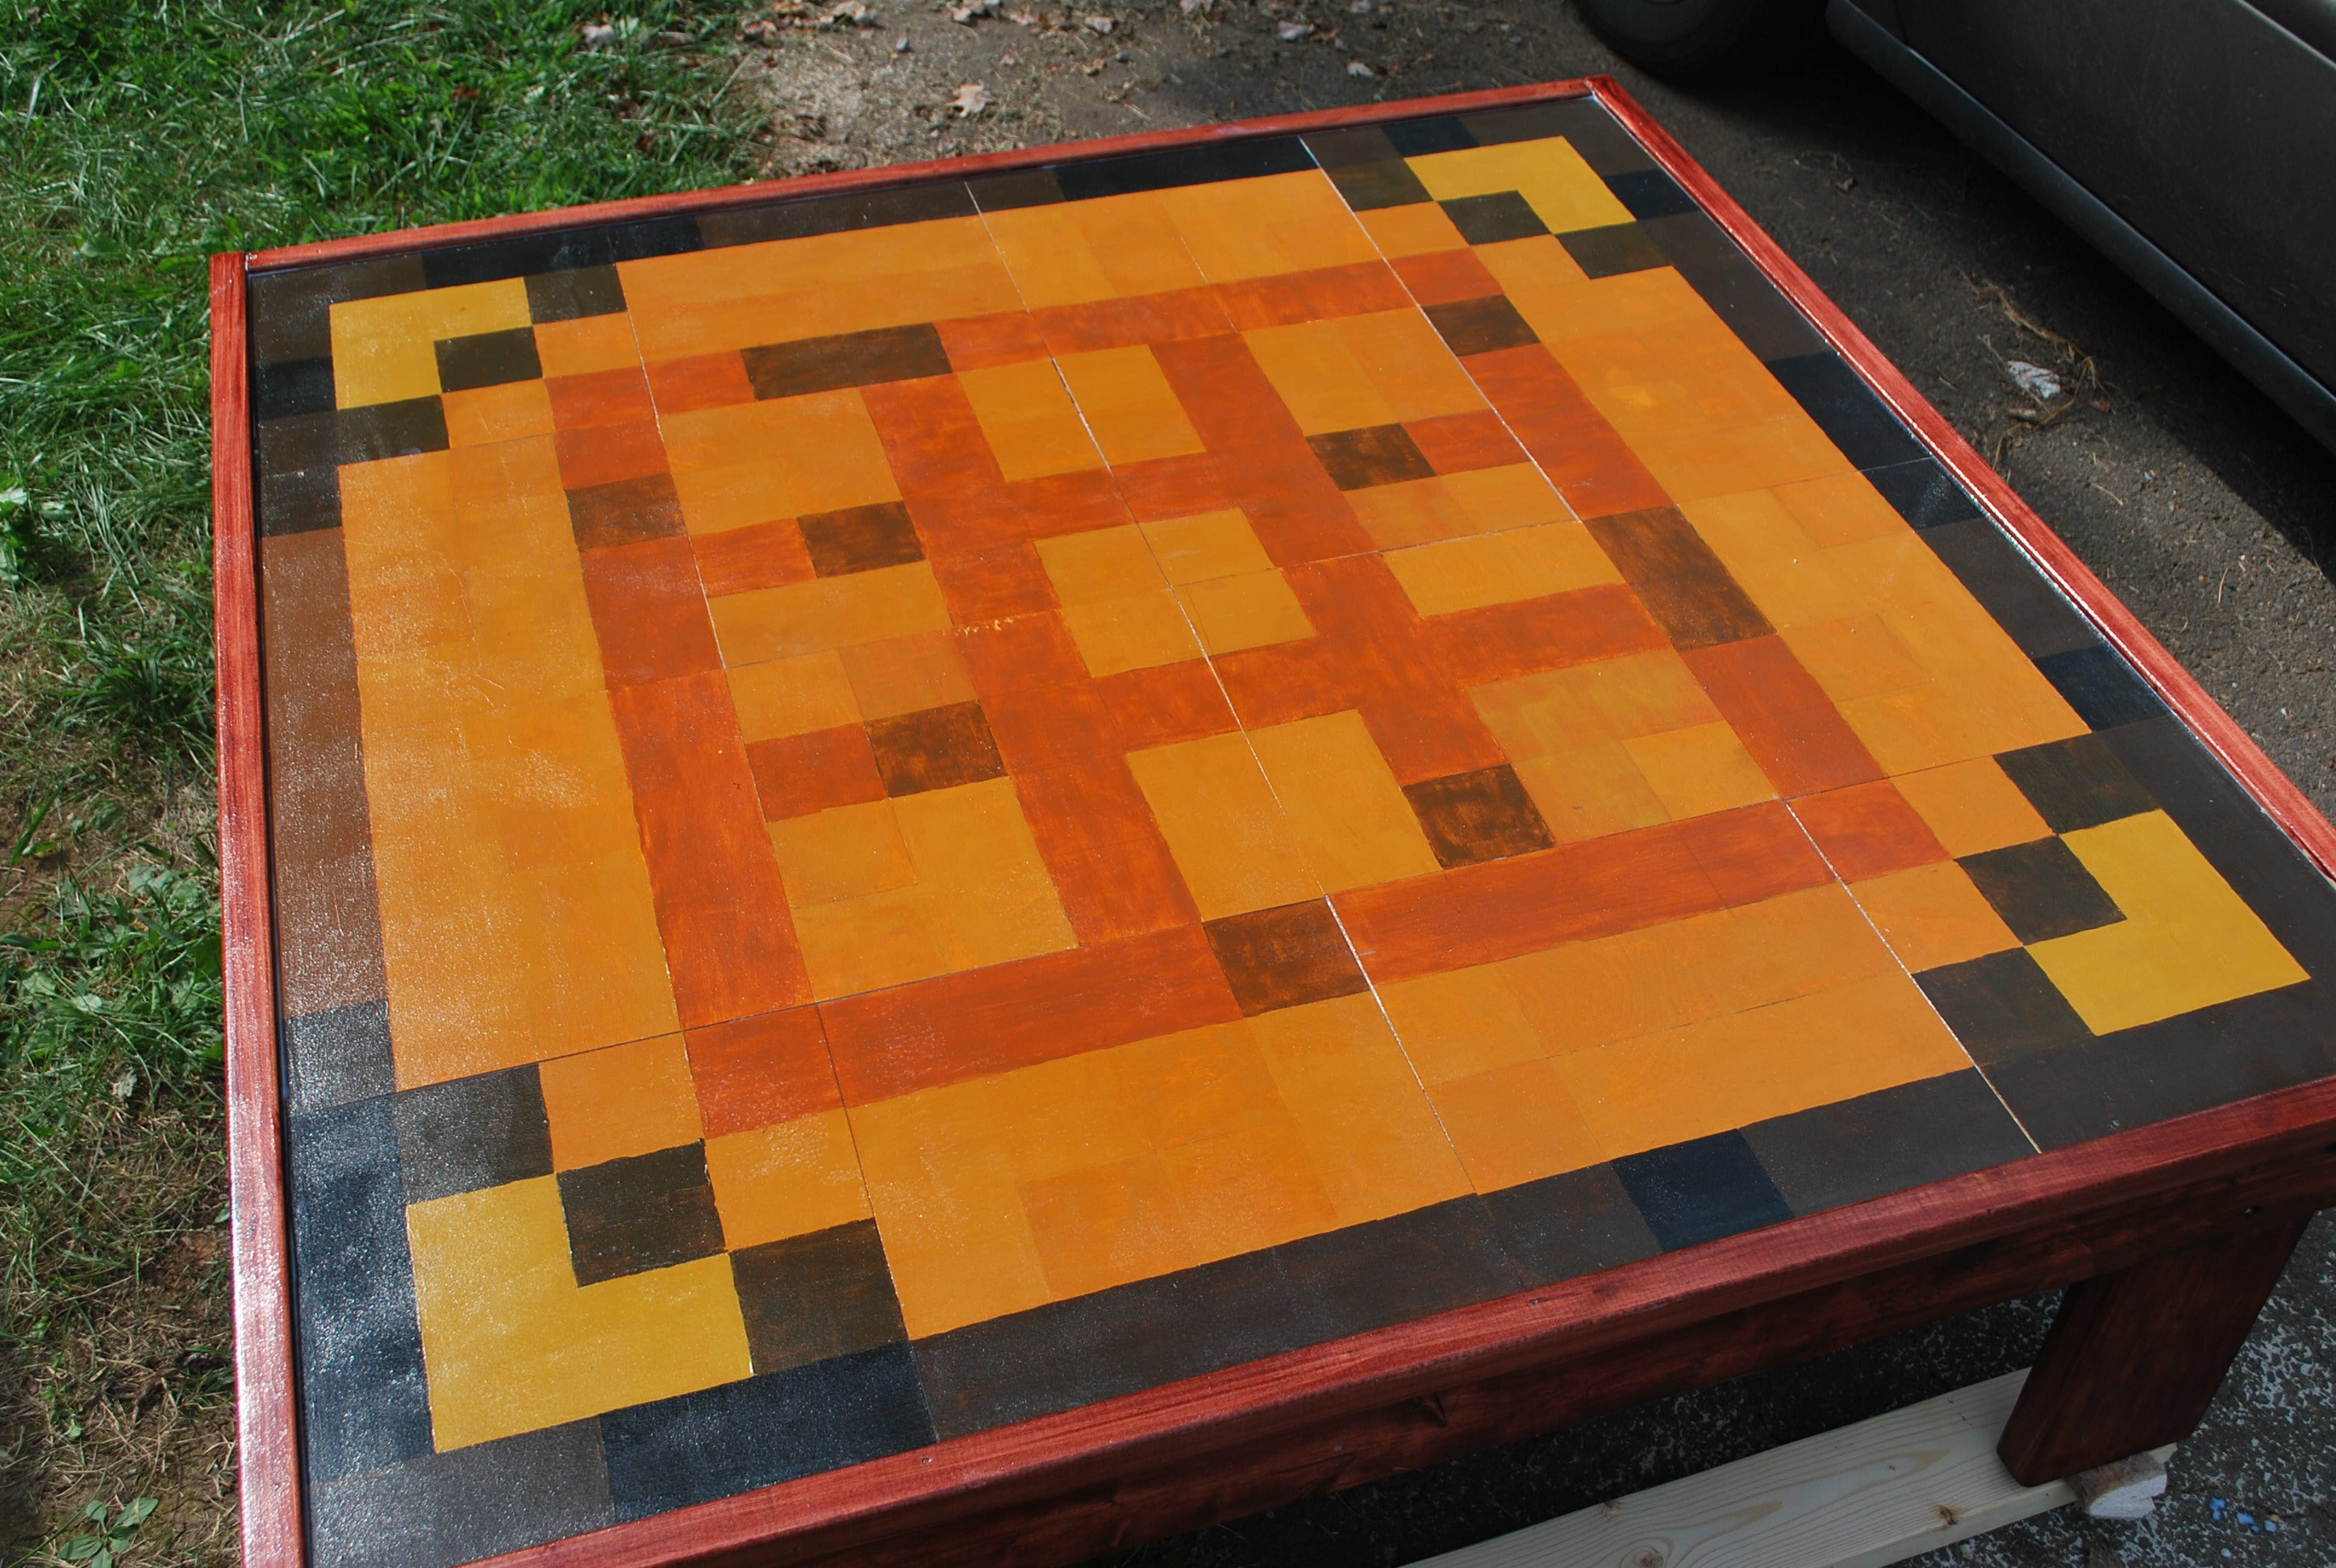 Minecraft Coffee Table : 9 Steps (with Pictures) - Instructables